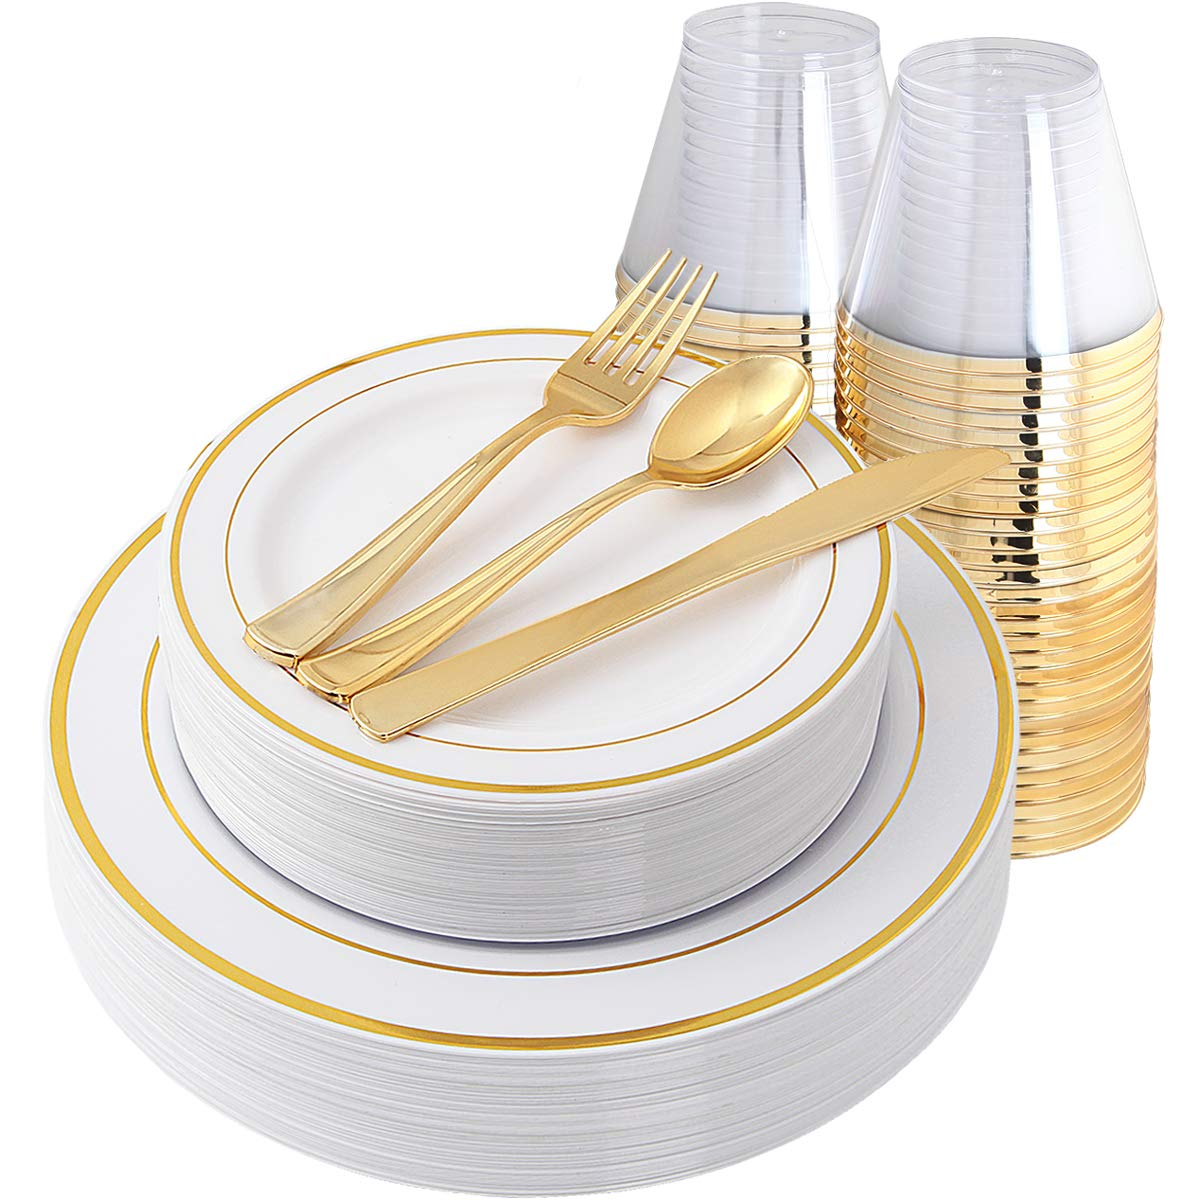 IOOOOO Gold Plates & Plastic Silverware & Gold Cups, Disposable Dinnerware 150 Pieces Includes: 25 Dinner Plates, 25 Dessert Plates, 25 Tumblers, 25 Forks, 25 Knives, 25 Spoons by IOOOOO